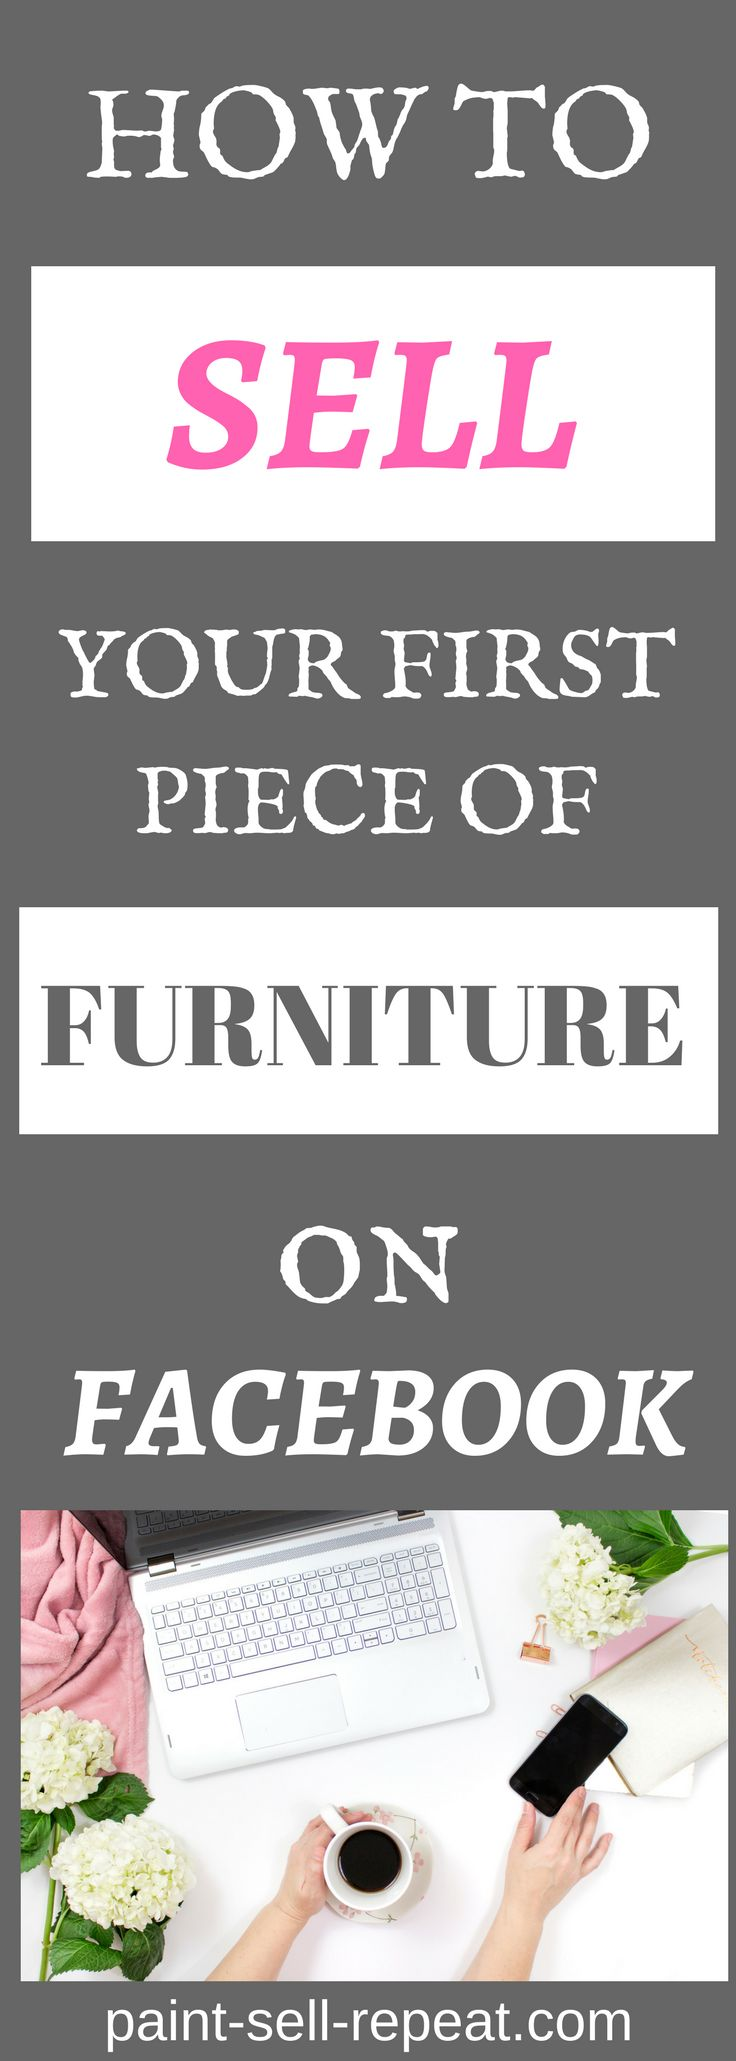 How to sell your first piece of furniture on Facebook is an awesome, informative...